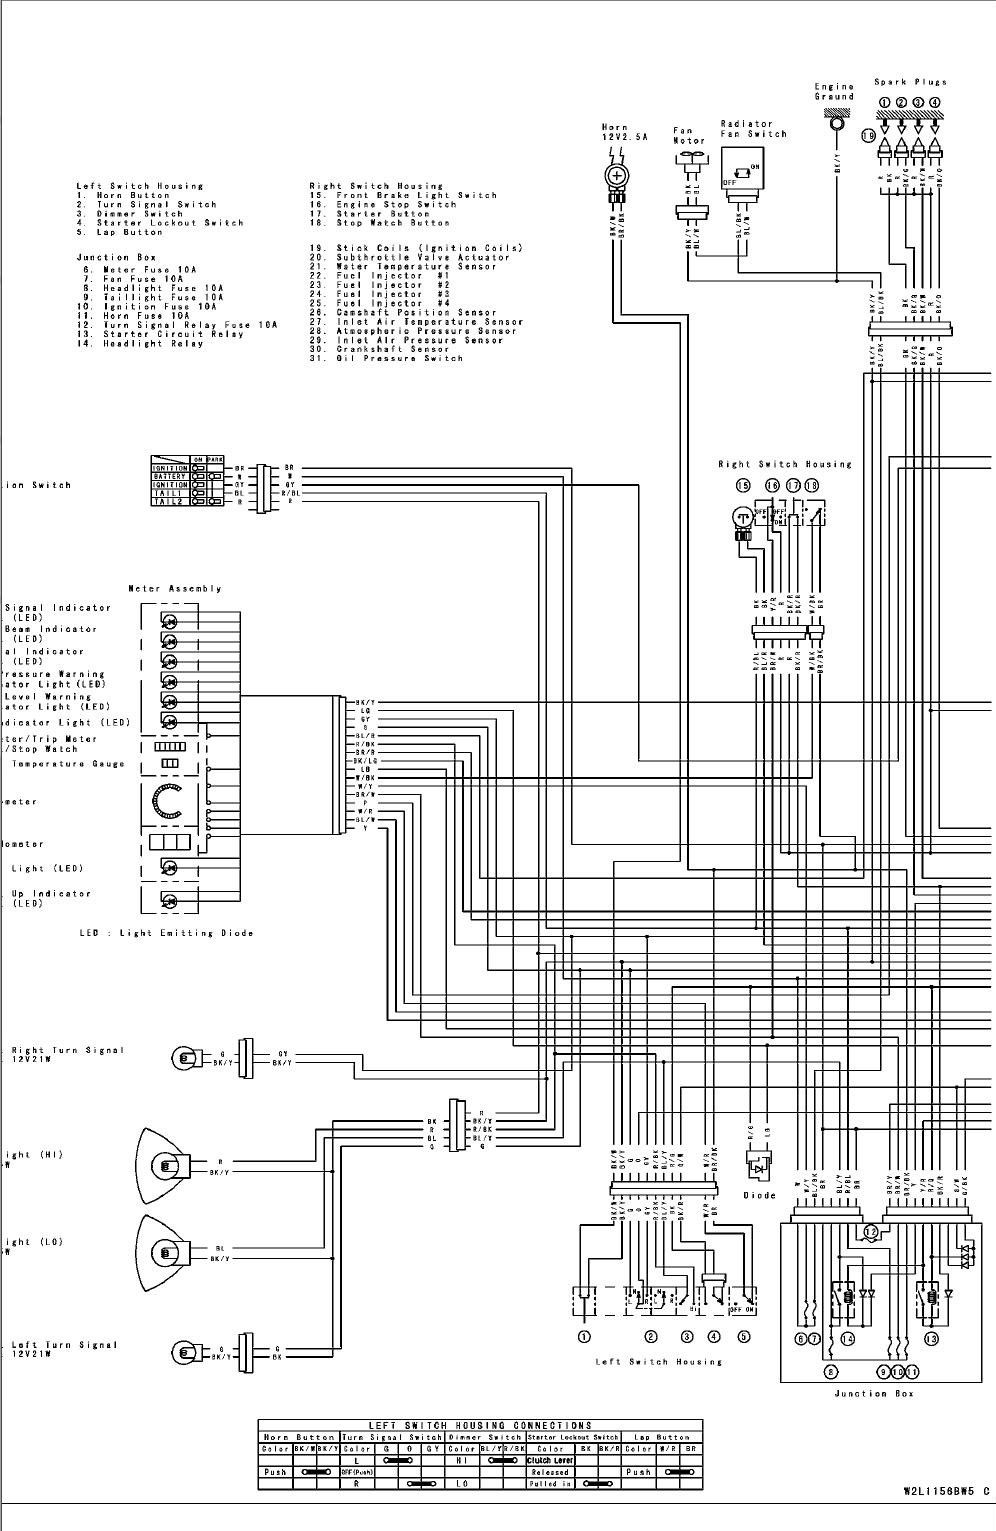 small resolution of kawasaki ninja zx600 wiring schematic wiring diagram blogwiring diagram 2007 zx6r schema diagram database kawasaki ninja